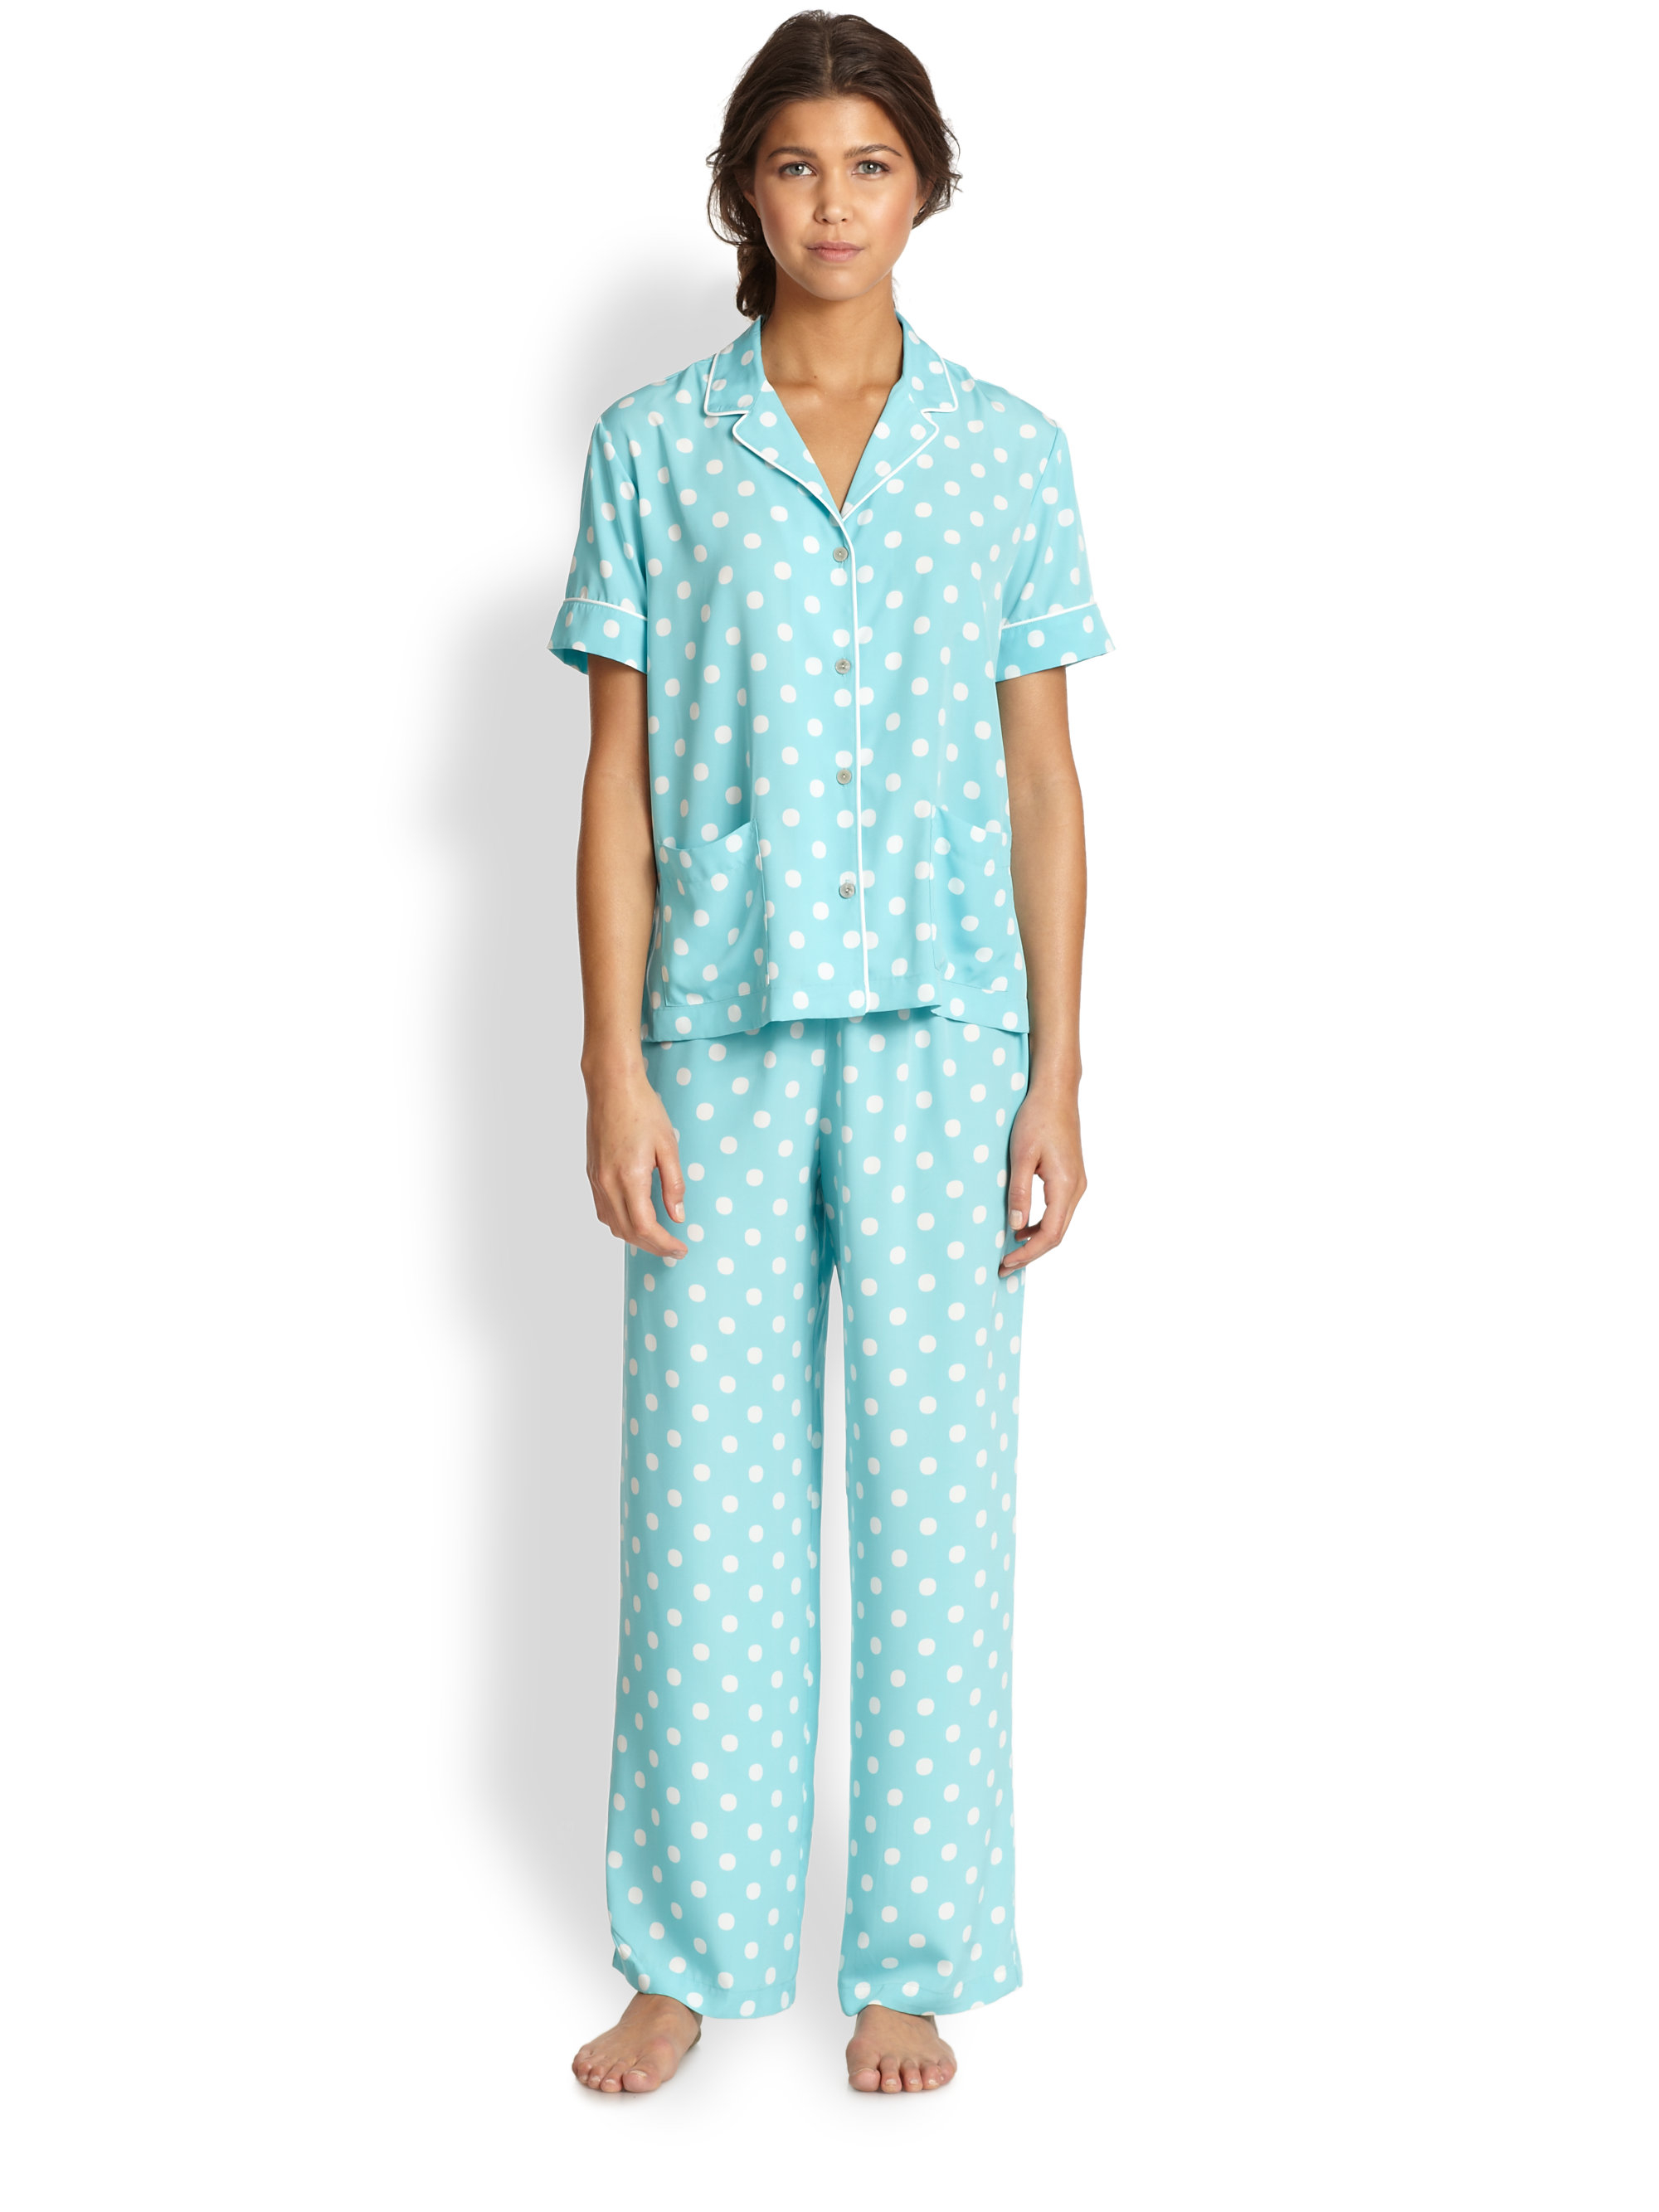 Women's Capri PJ Set by Blair, Pink, Size M. Short V-Neck Sleepwear & Loungewear by Blair. Comes in Pink, Size M. The sleepwear set you dream about. Top has V-shaped neckline plus a button front. Short sleeves with satin and picot trim. Lace and embroidery trim bottom hem.